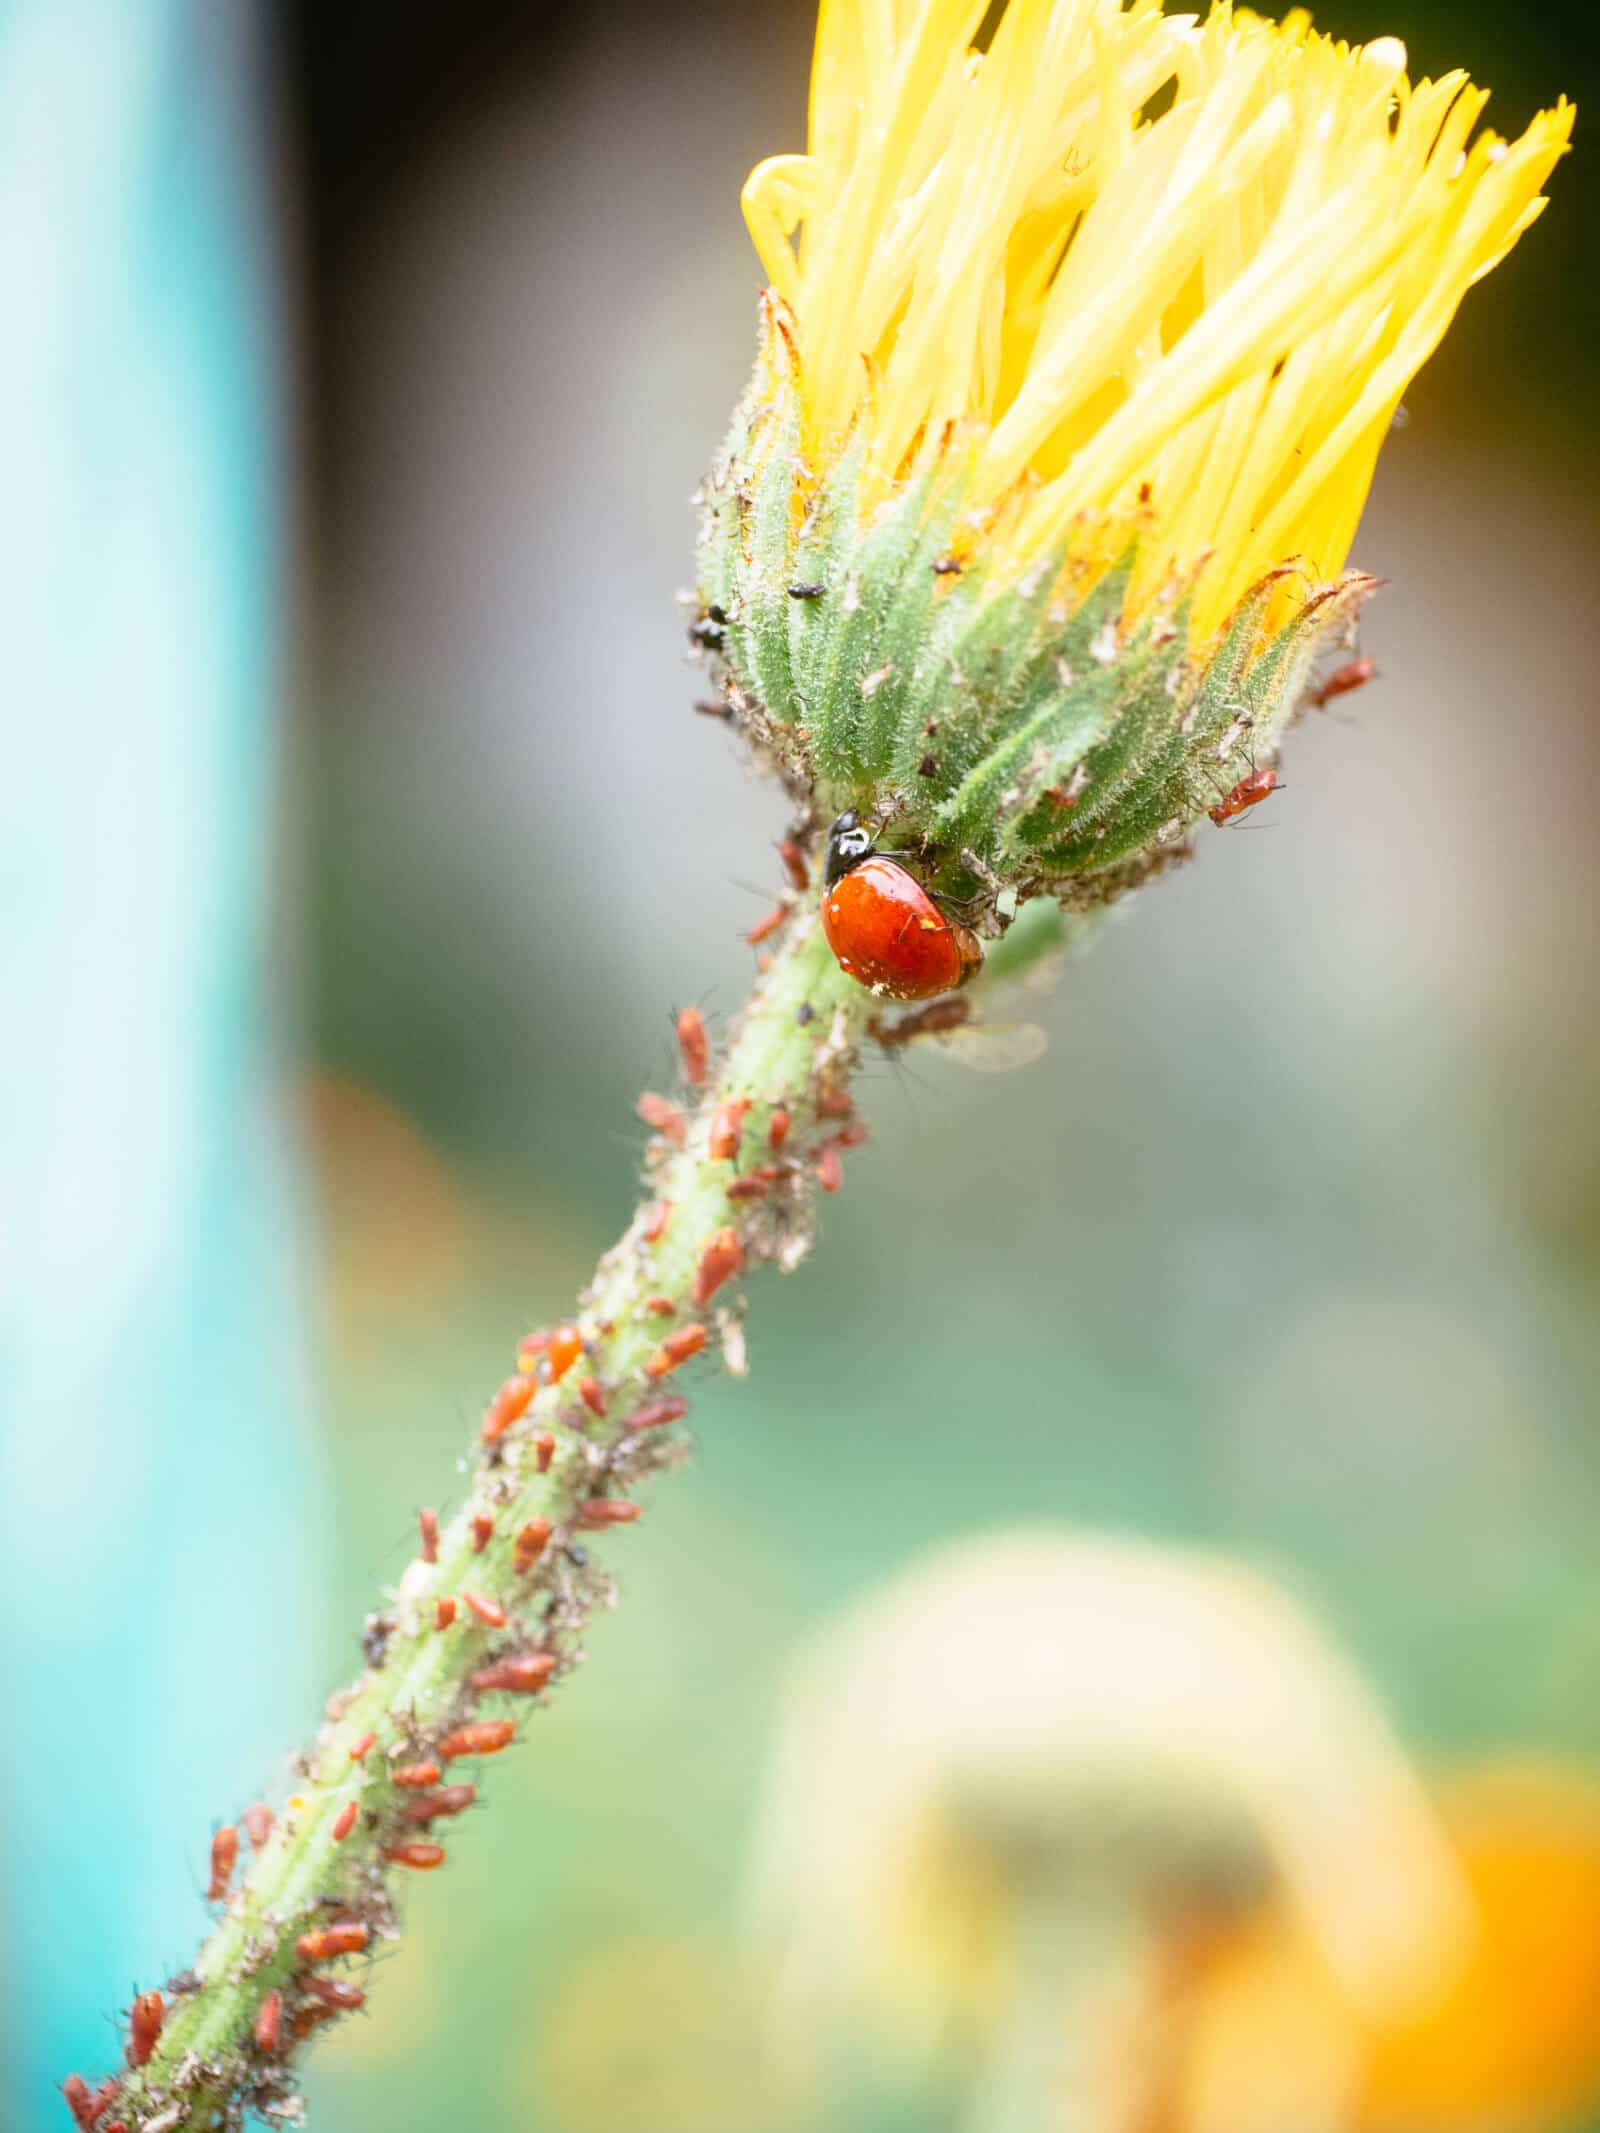 Ladybugs are natural predators of aphids